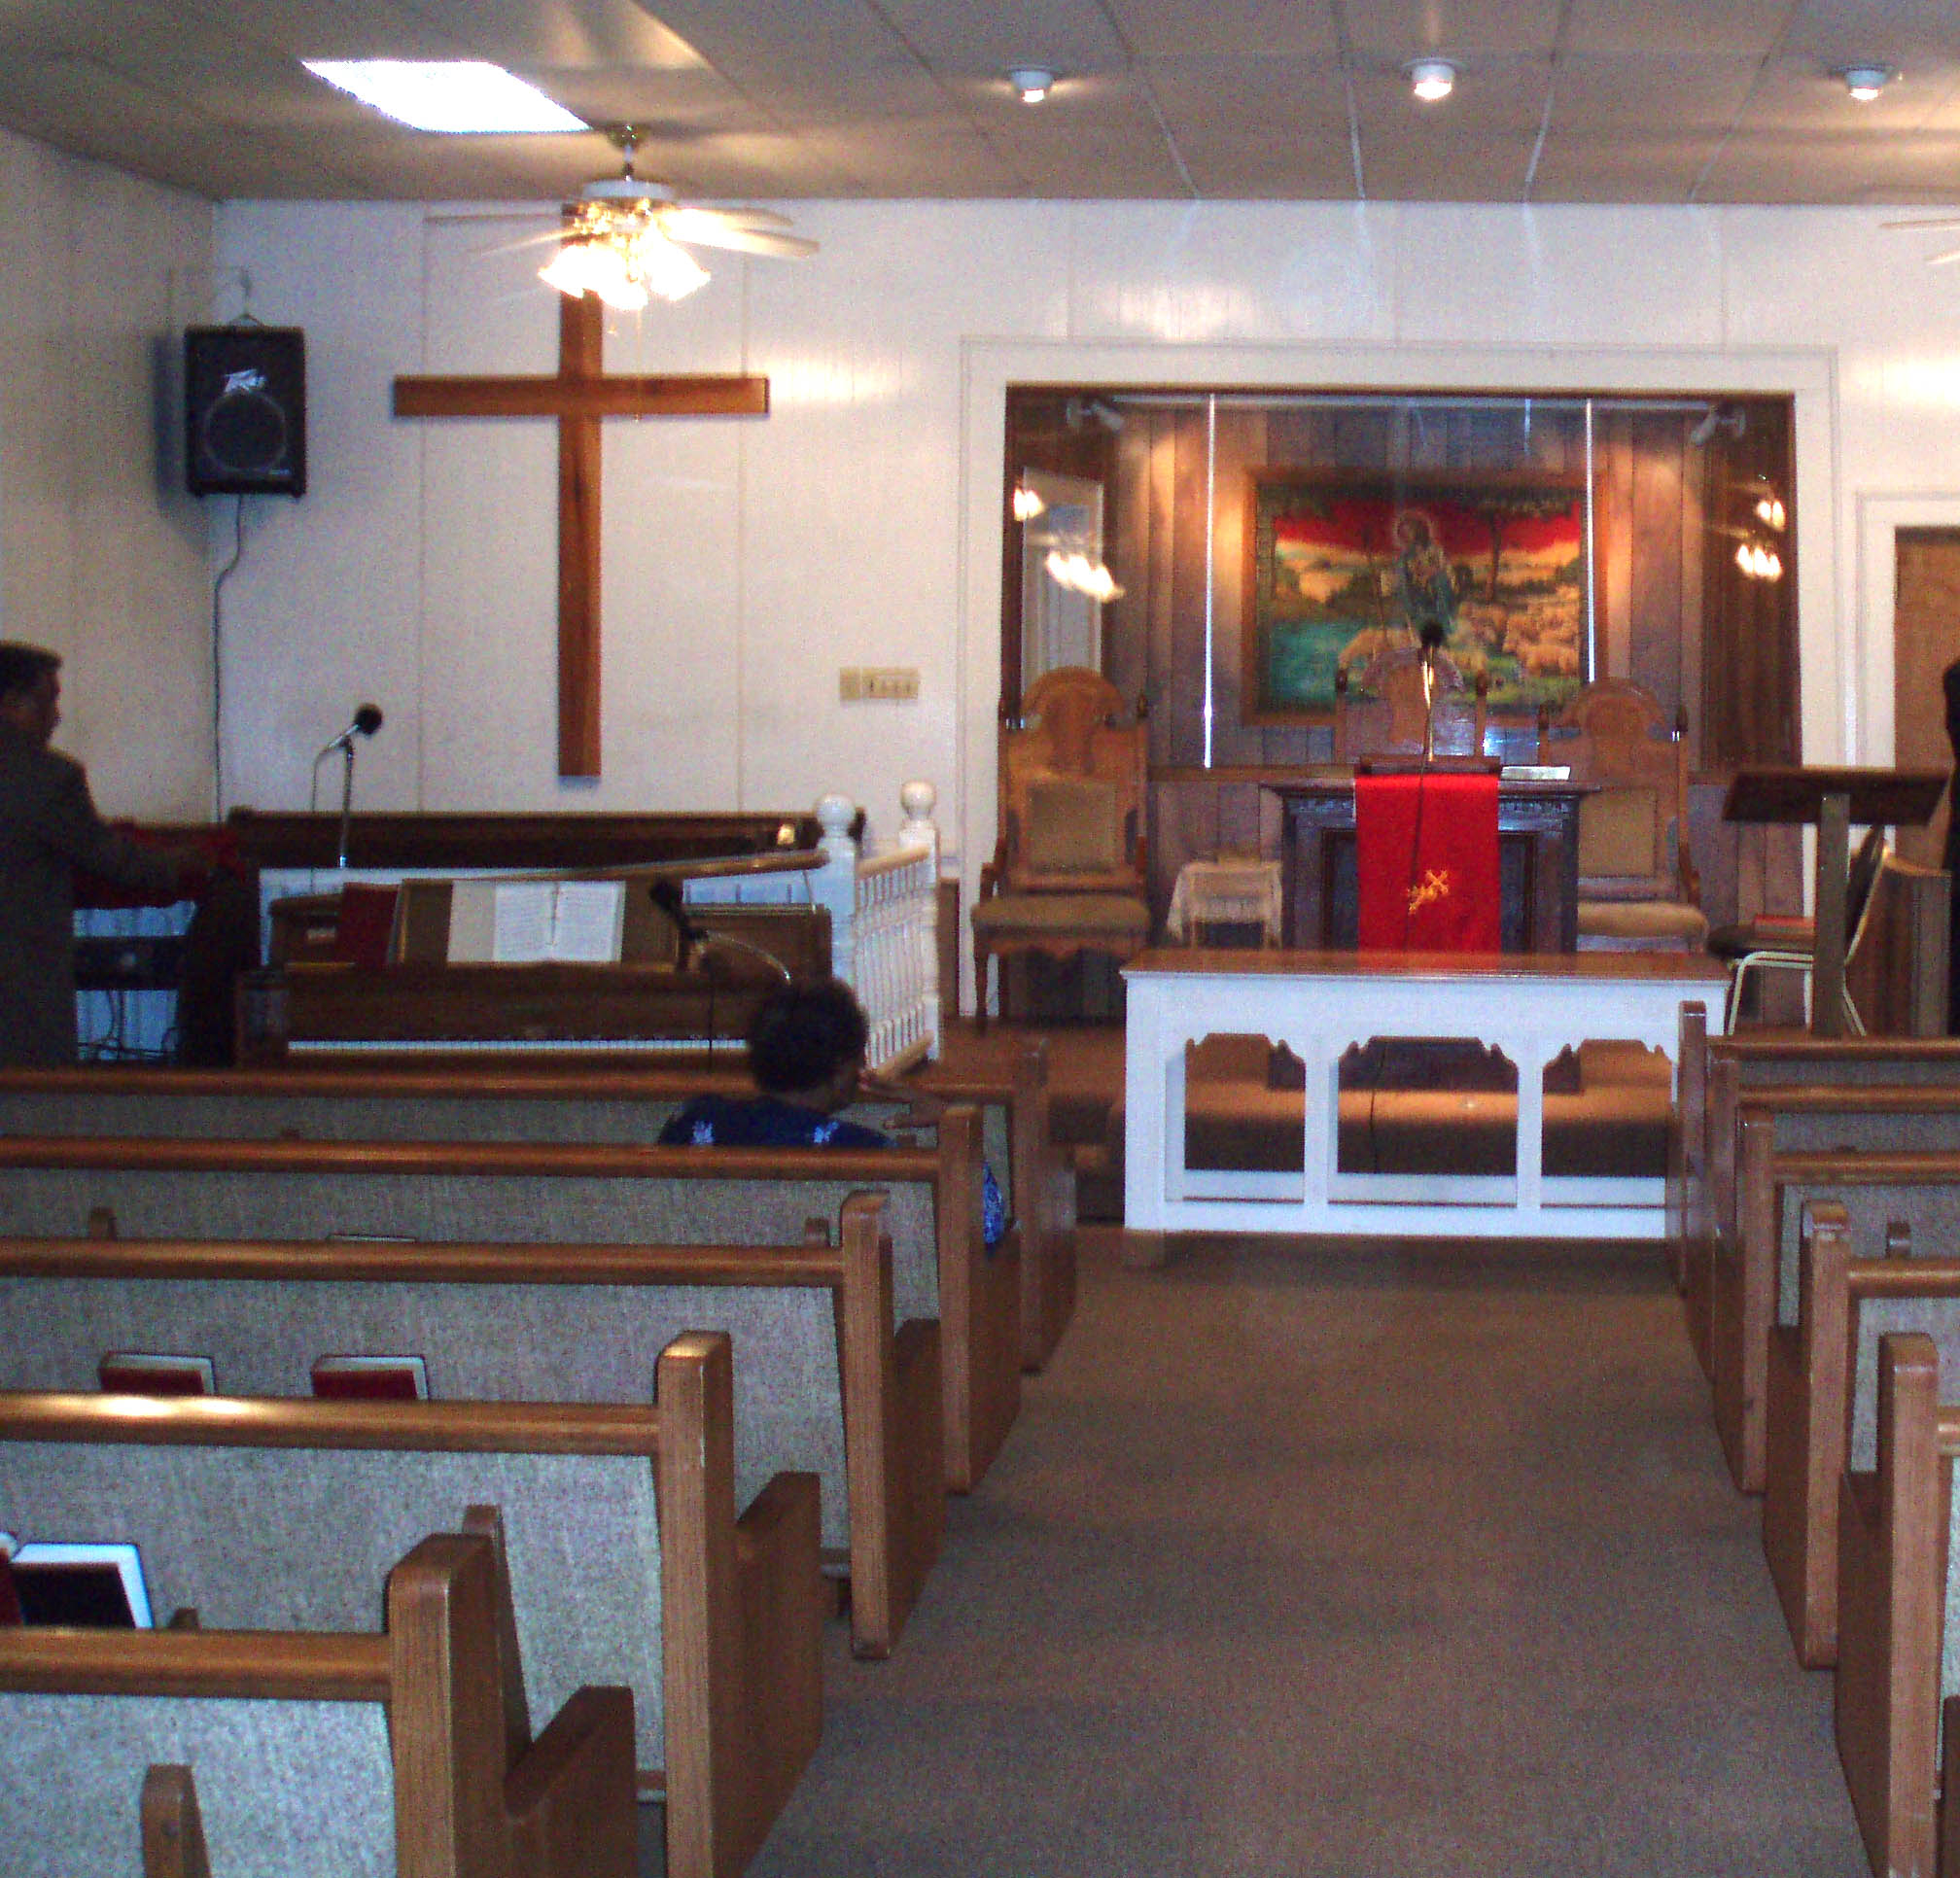 Looking toward front of sanctuary with pews on both sides of the aisle.